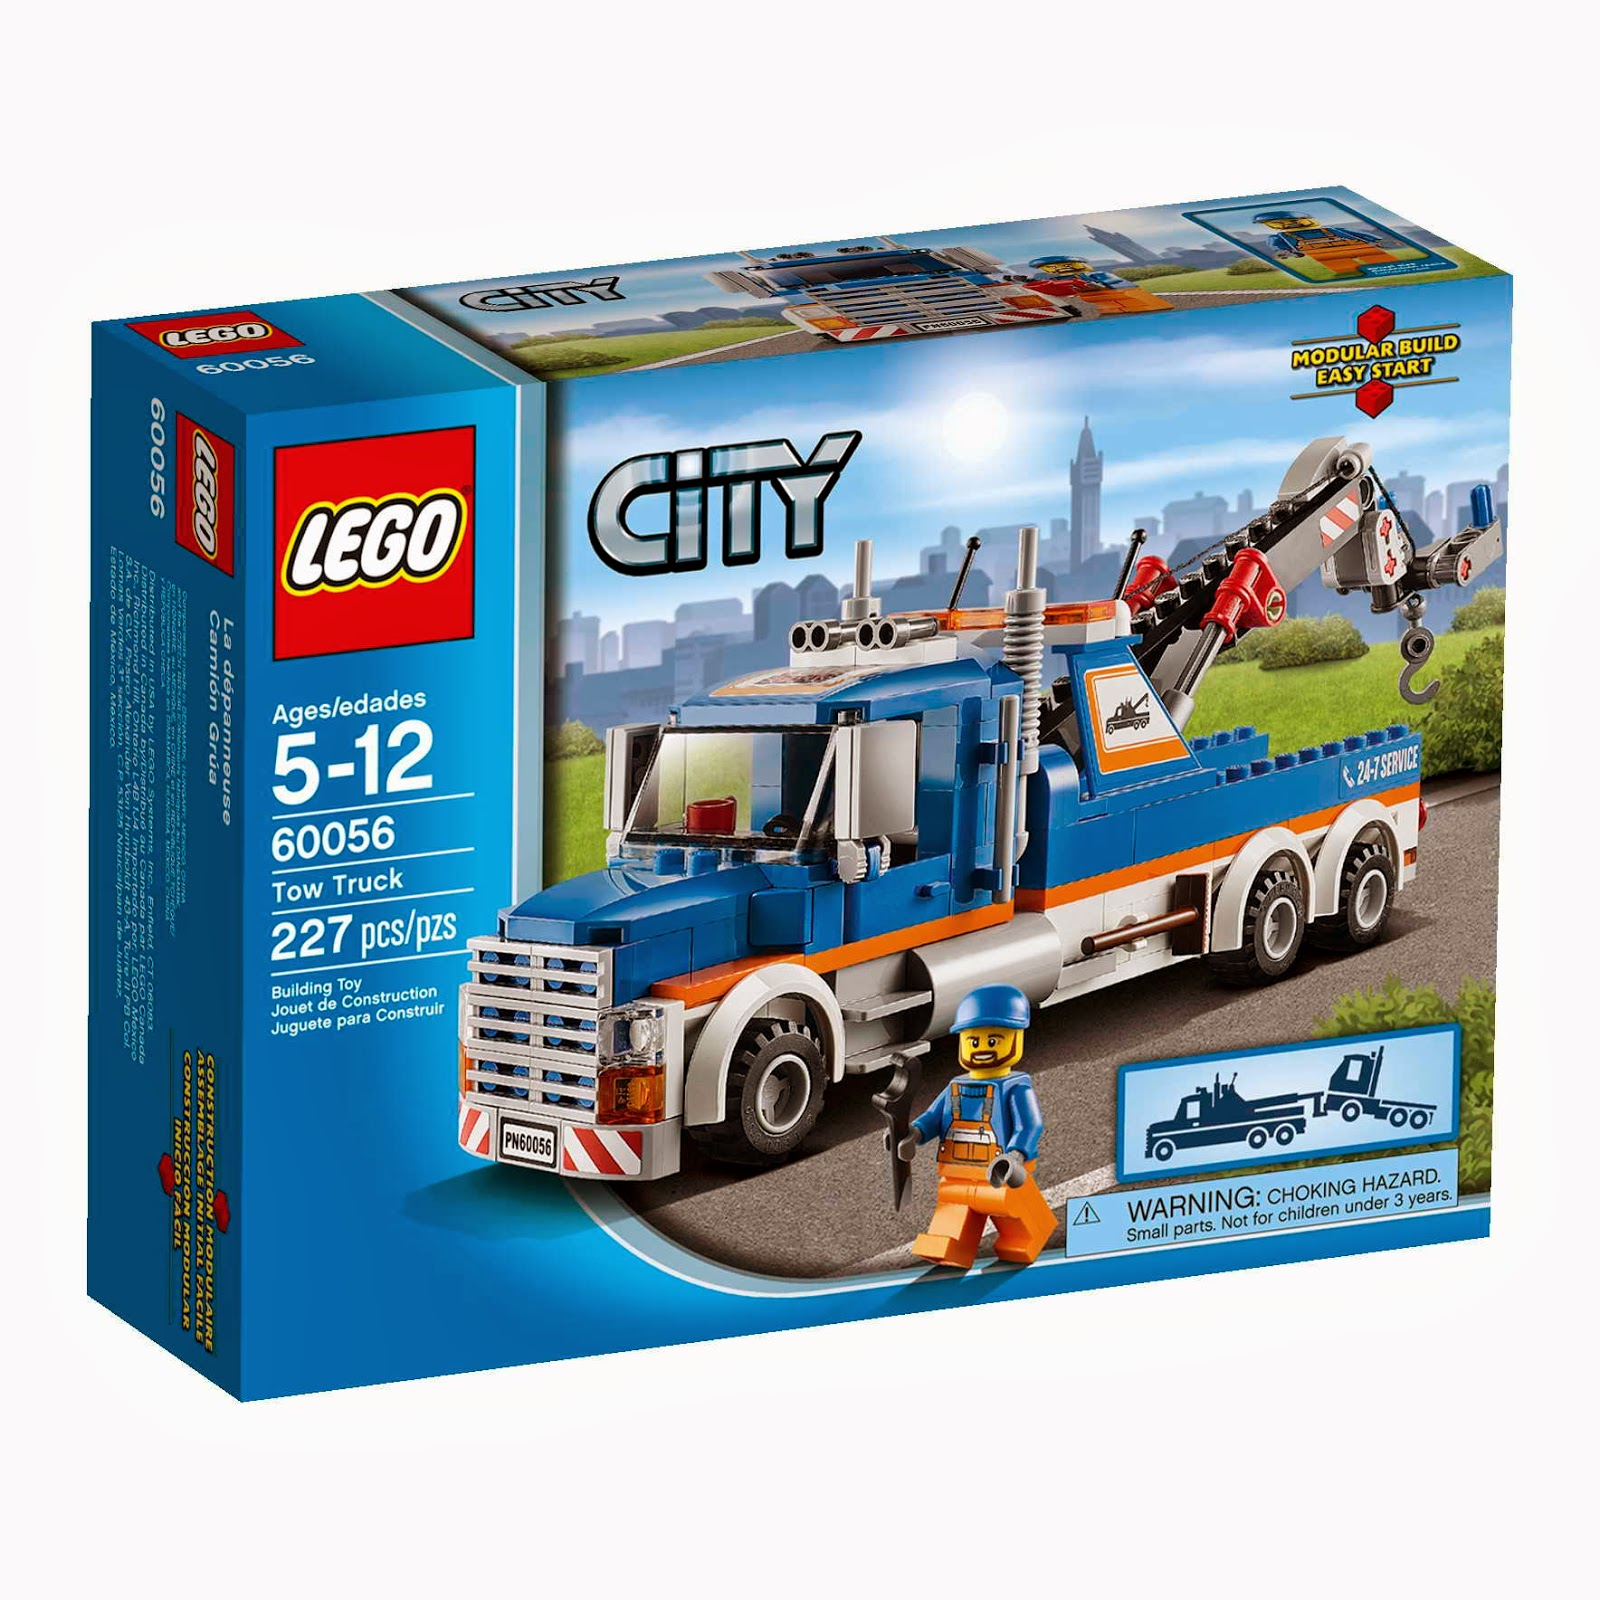 toy helicopter repair shop with 111113 Lego 60056 Tow Truck Box Art on Timeline as well Sterling Silver Bracelets And Necklaces together with C9131530 likewise 300pcs Screws Set With Screwdriver For Security Camera Phone Etc further 20pcs Black 2 Wired 12v 23a Mn21 Ms21 Battery Case Box Holder.